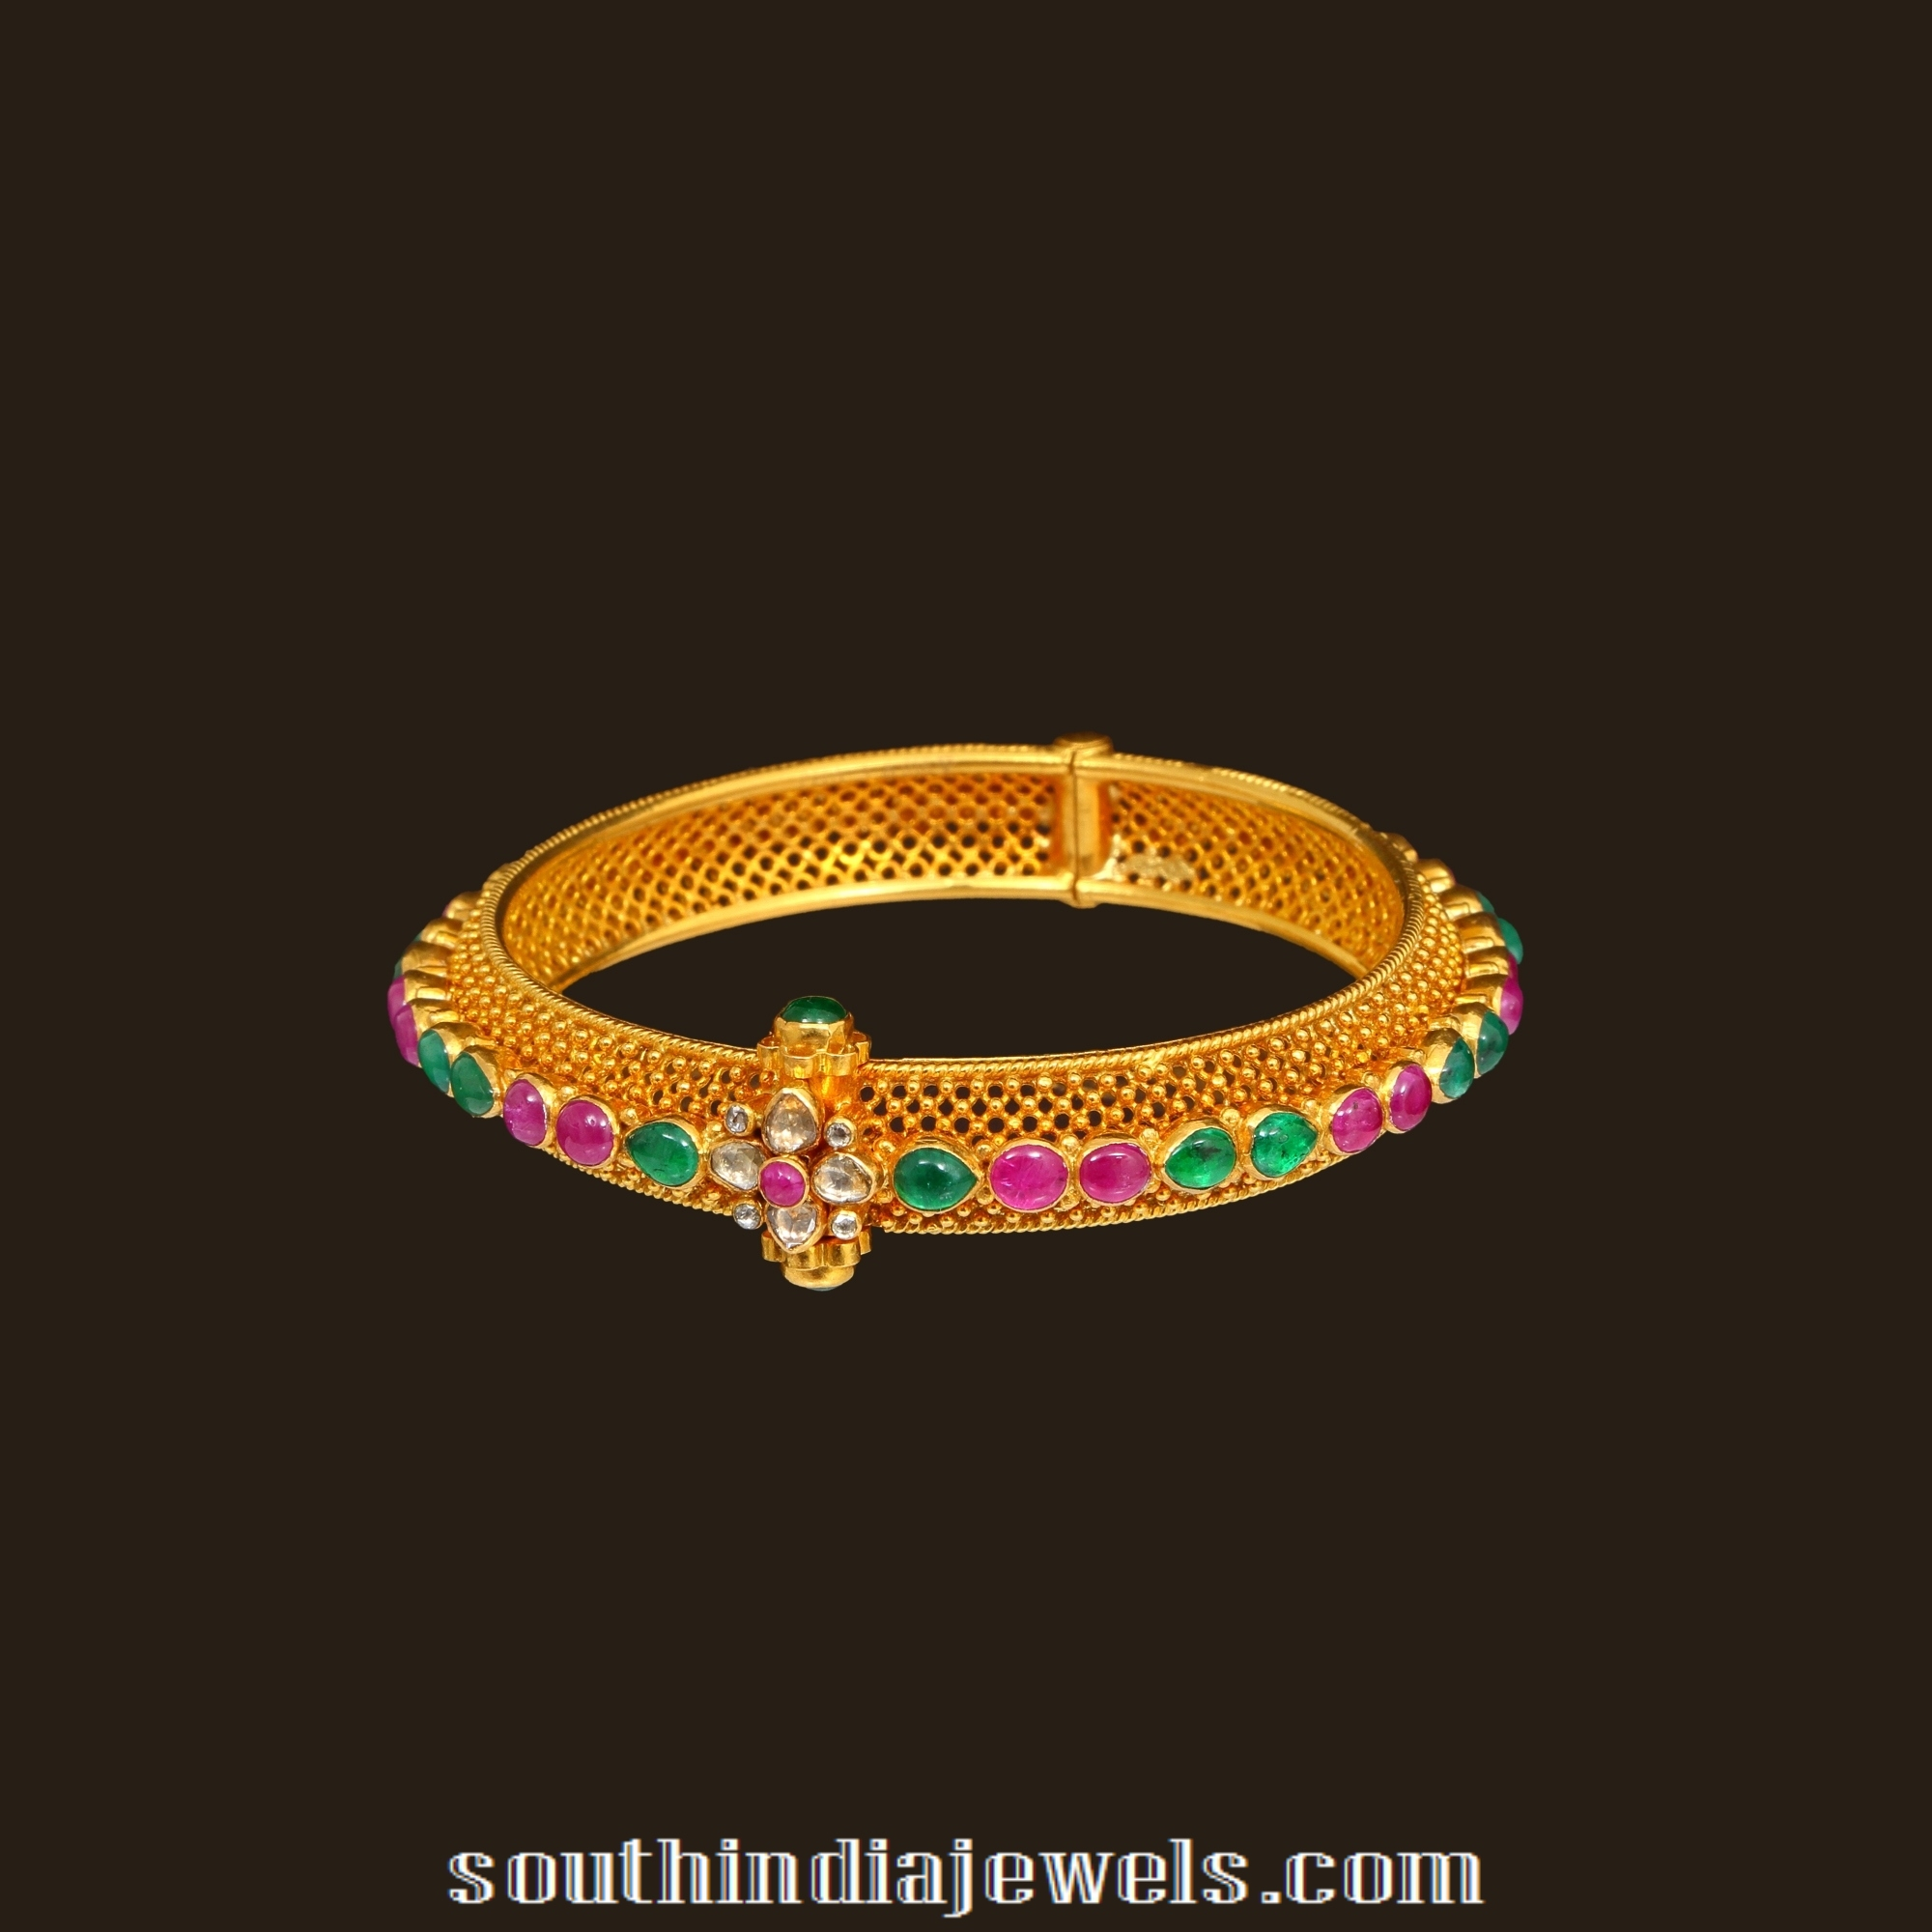 Gold Kada Style Bangle South India Jewels